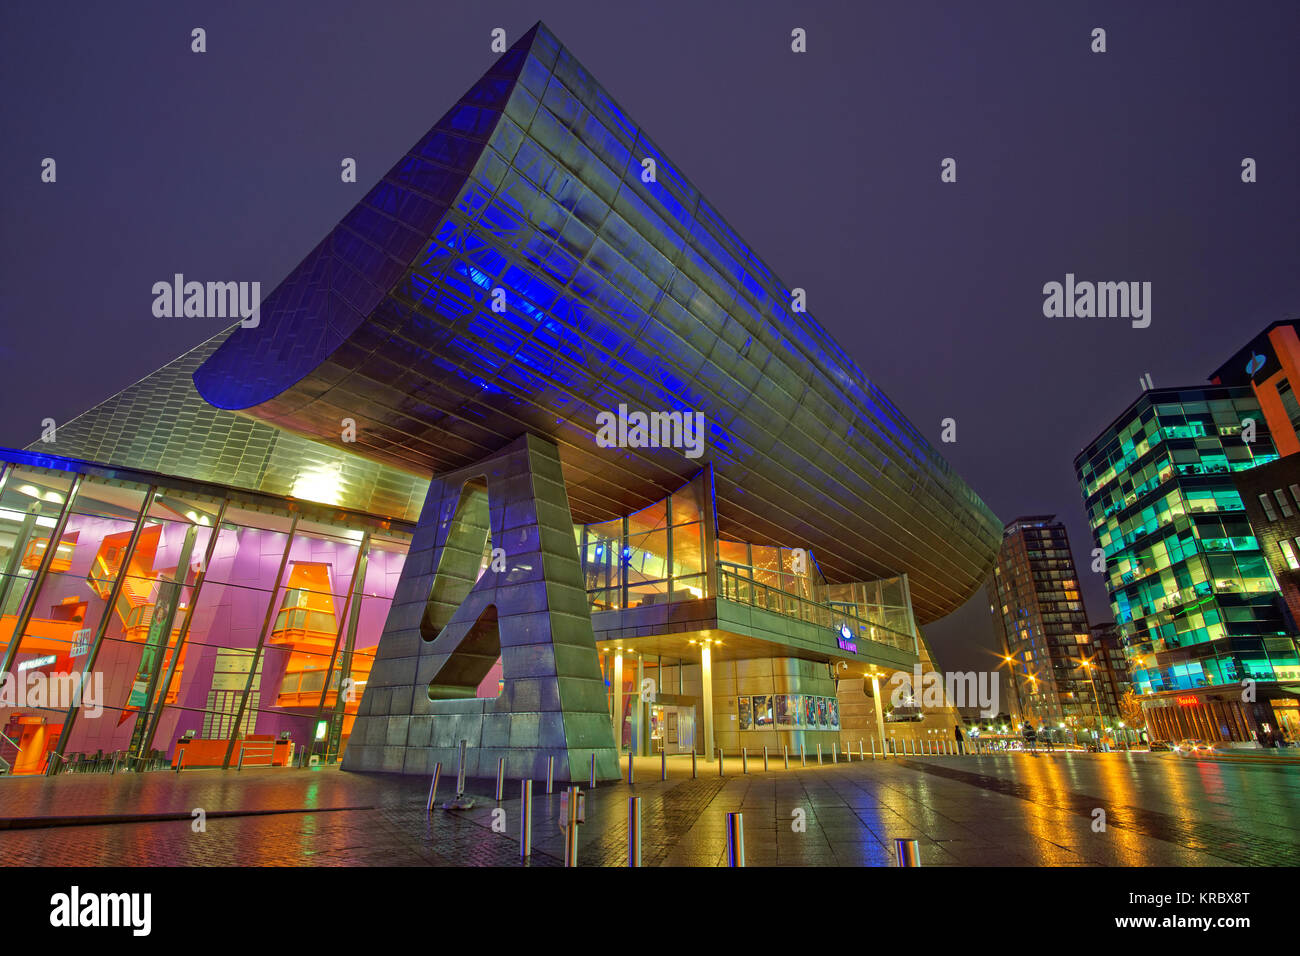 The Lowry theatre at Salford Quays, Salford, Greater Manchester. - Stock Image